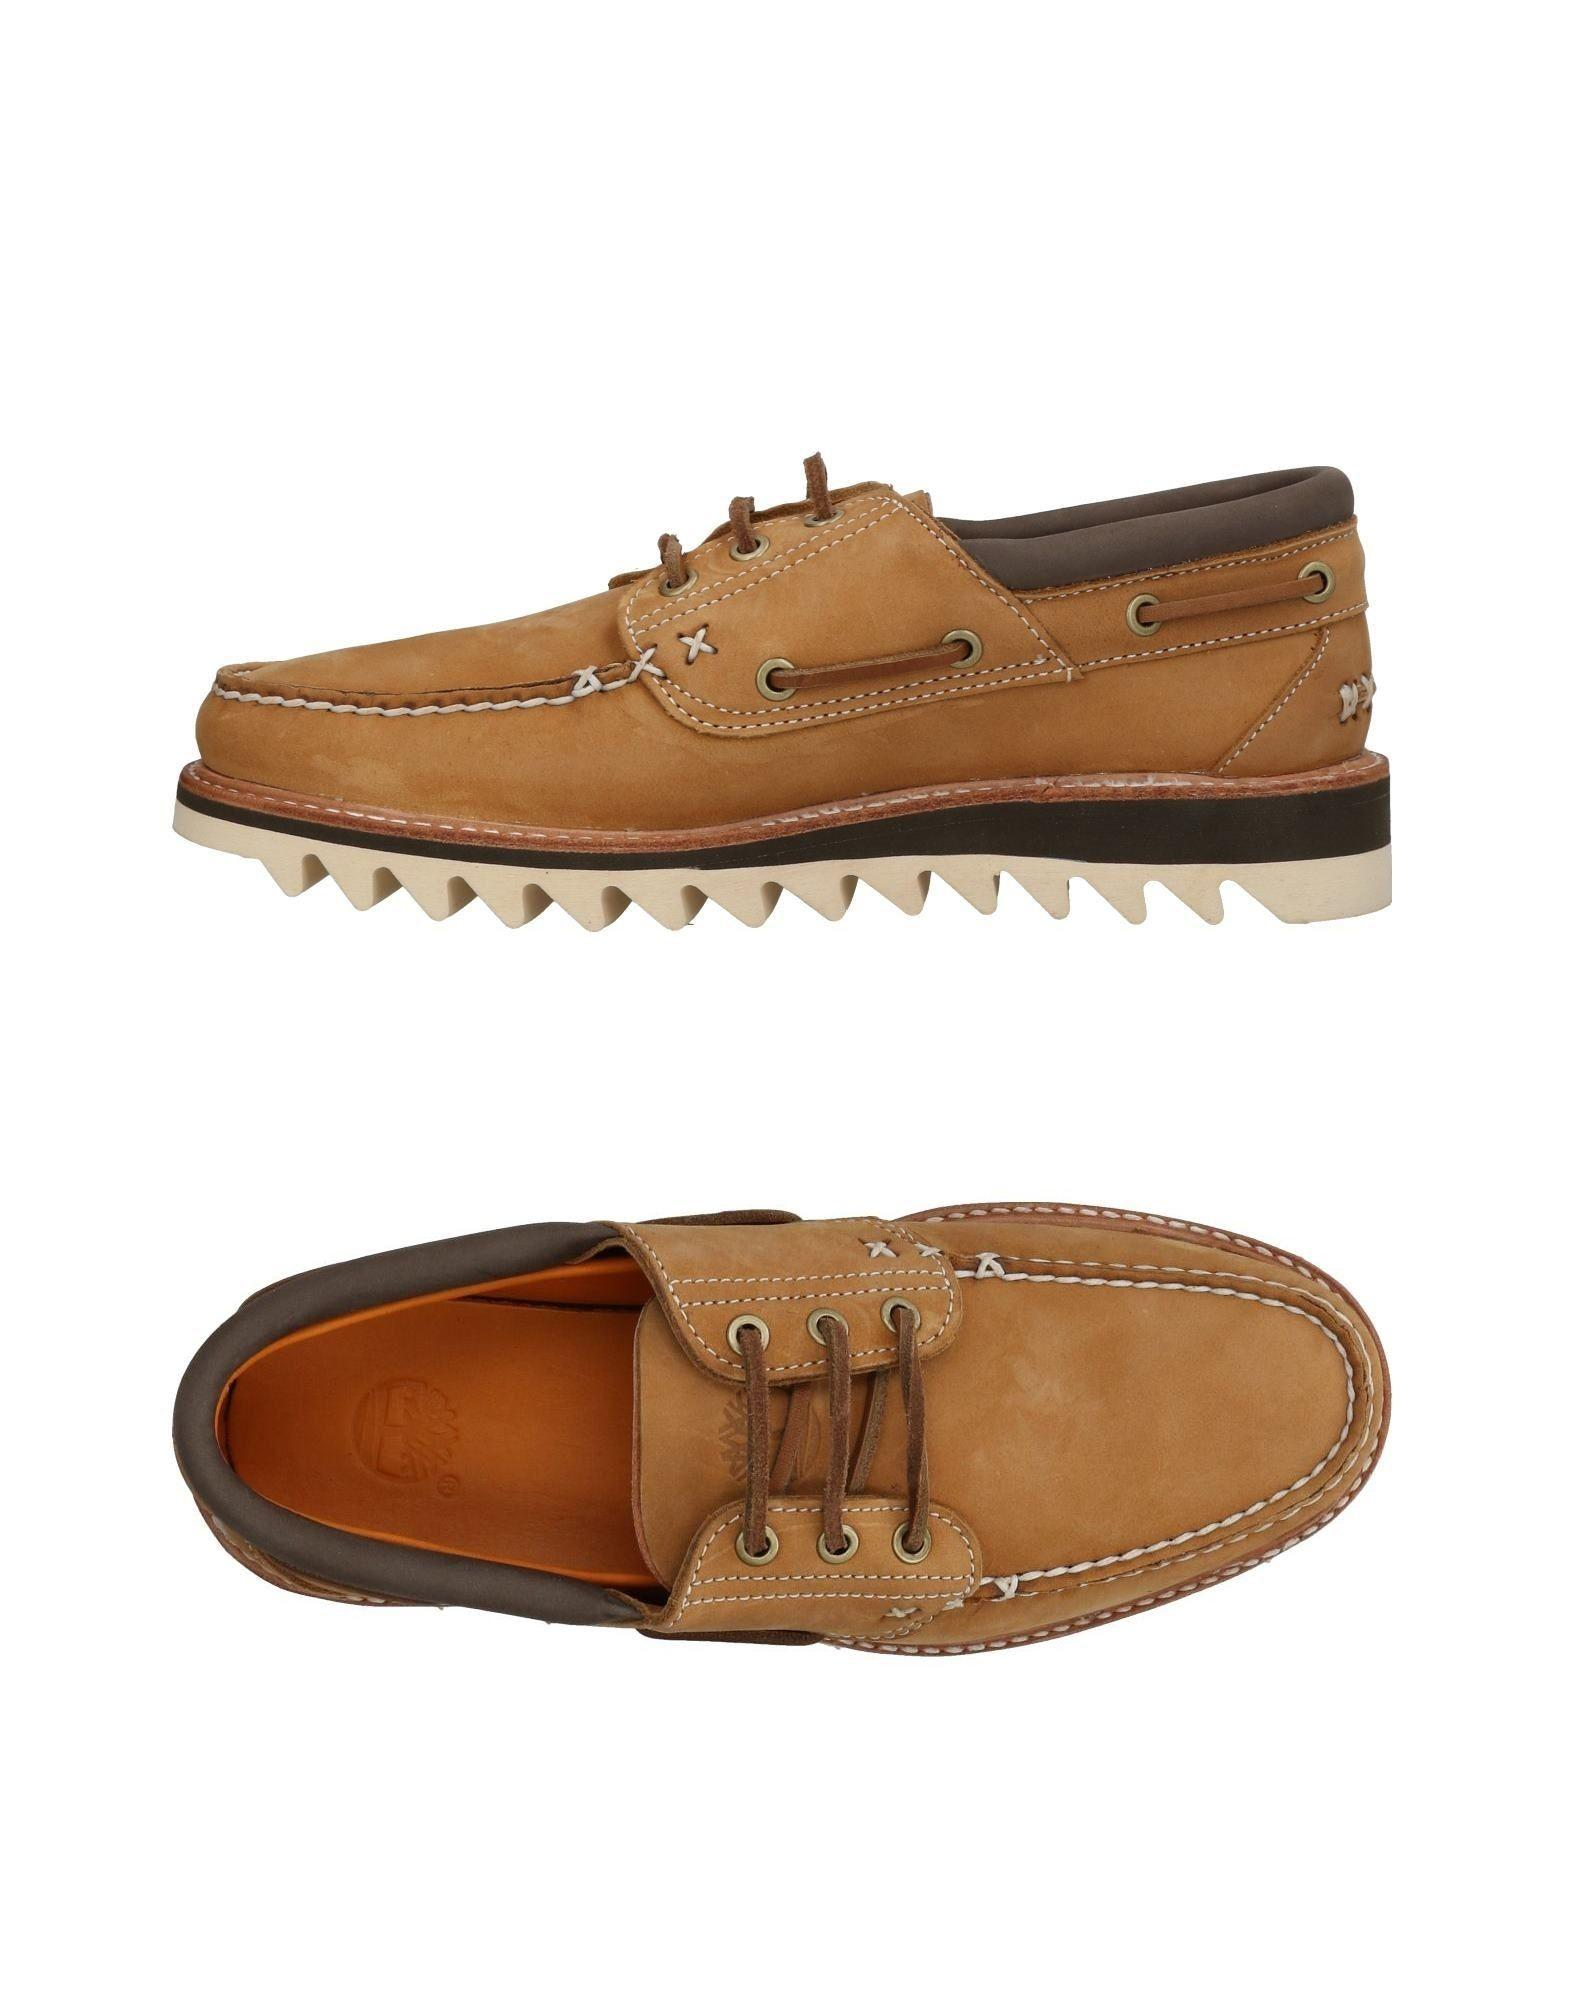 Timberland Loafers In Sand